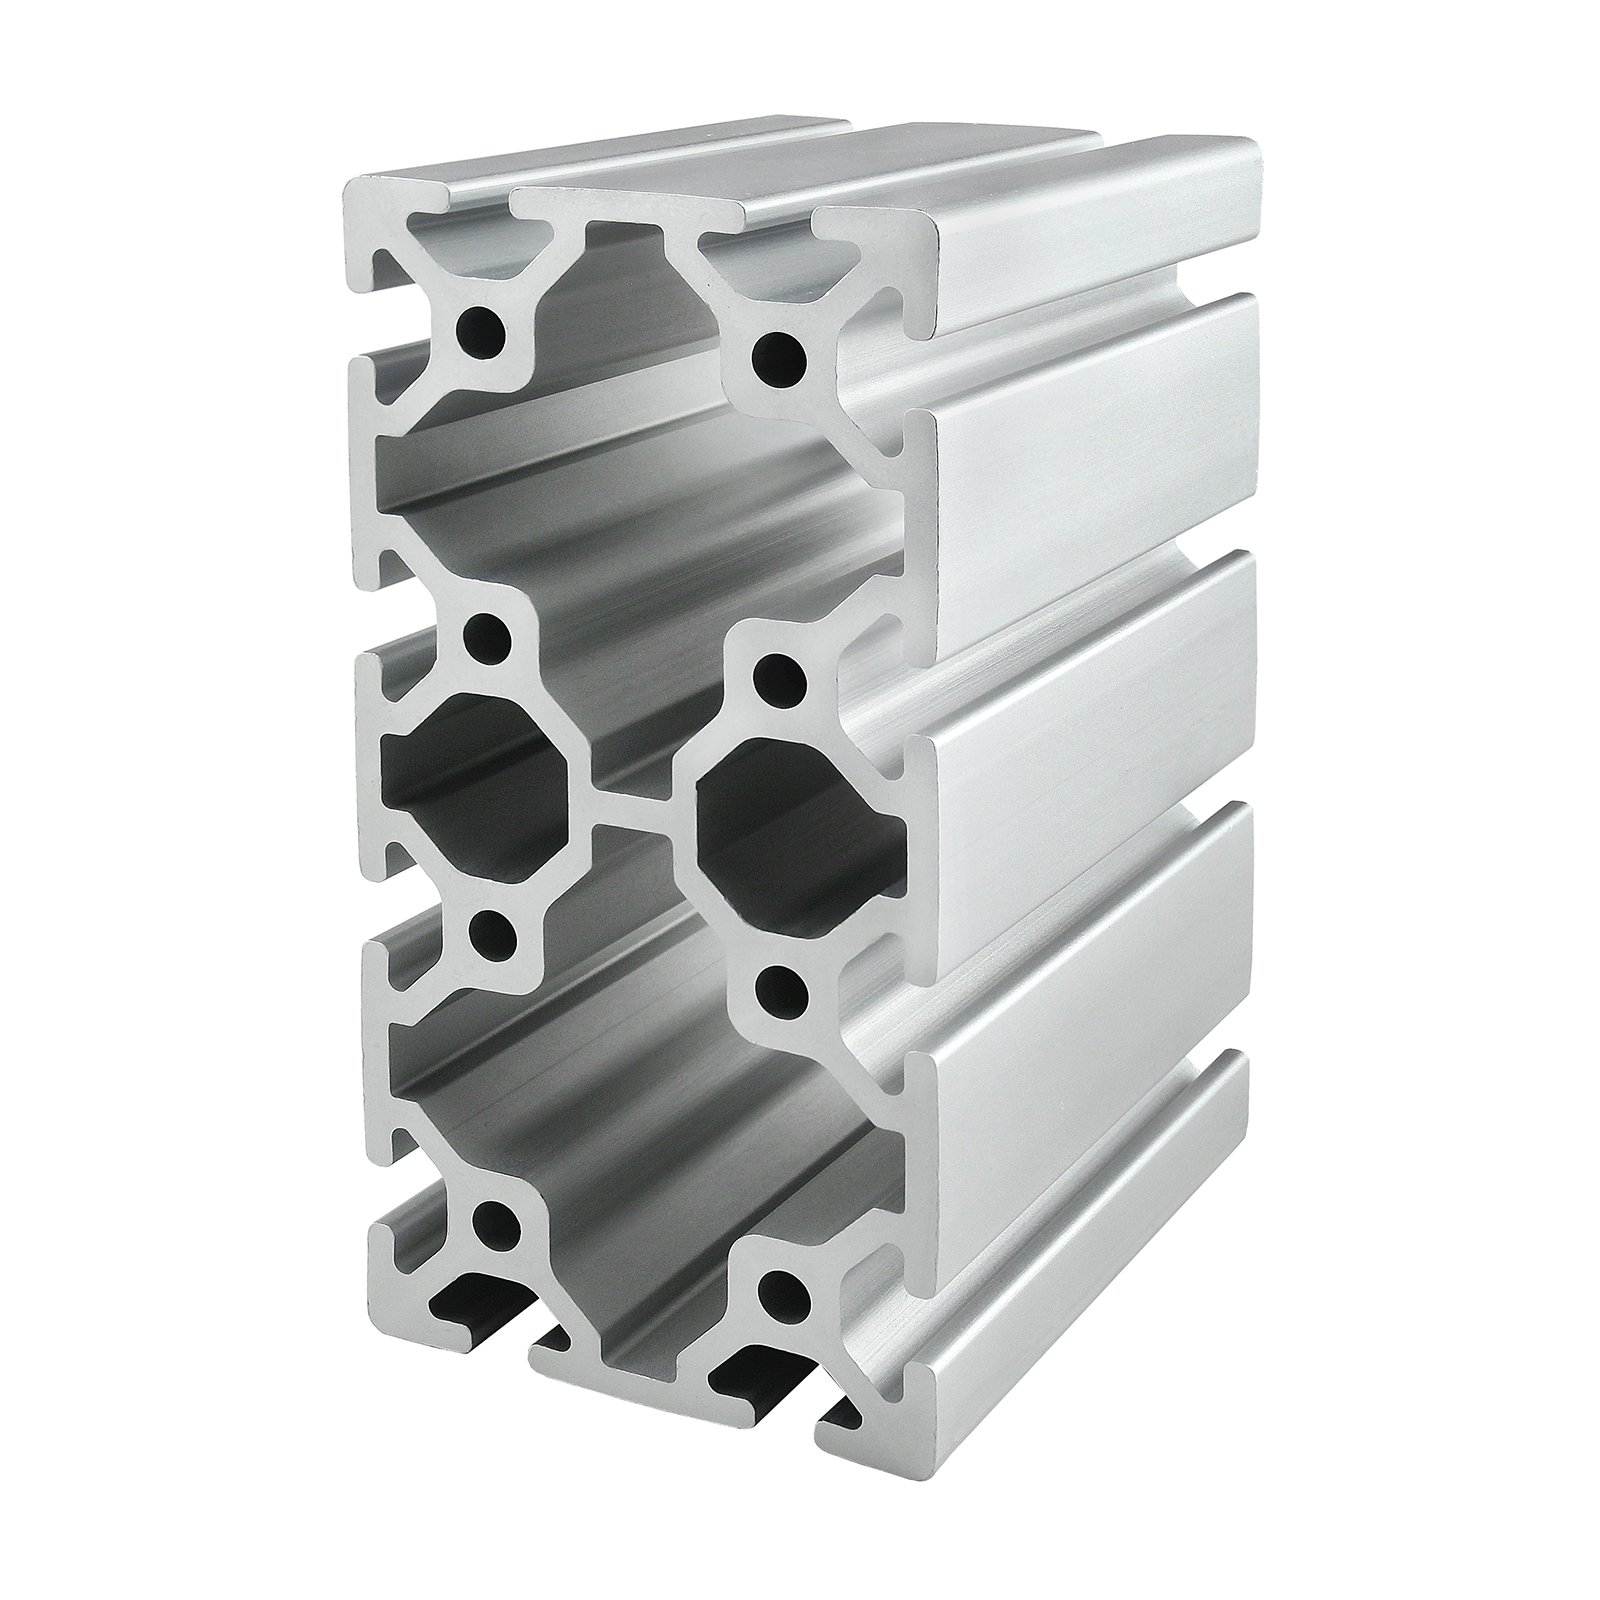 80/20 Inc., 40-8016, 40 Series, 80mm x 160mm T-Slotted Extrusion x 1500mm